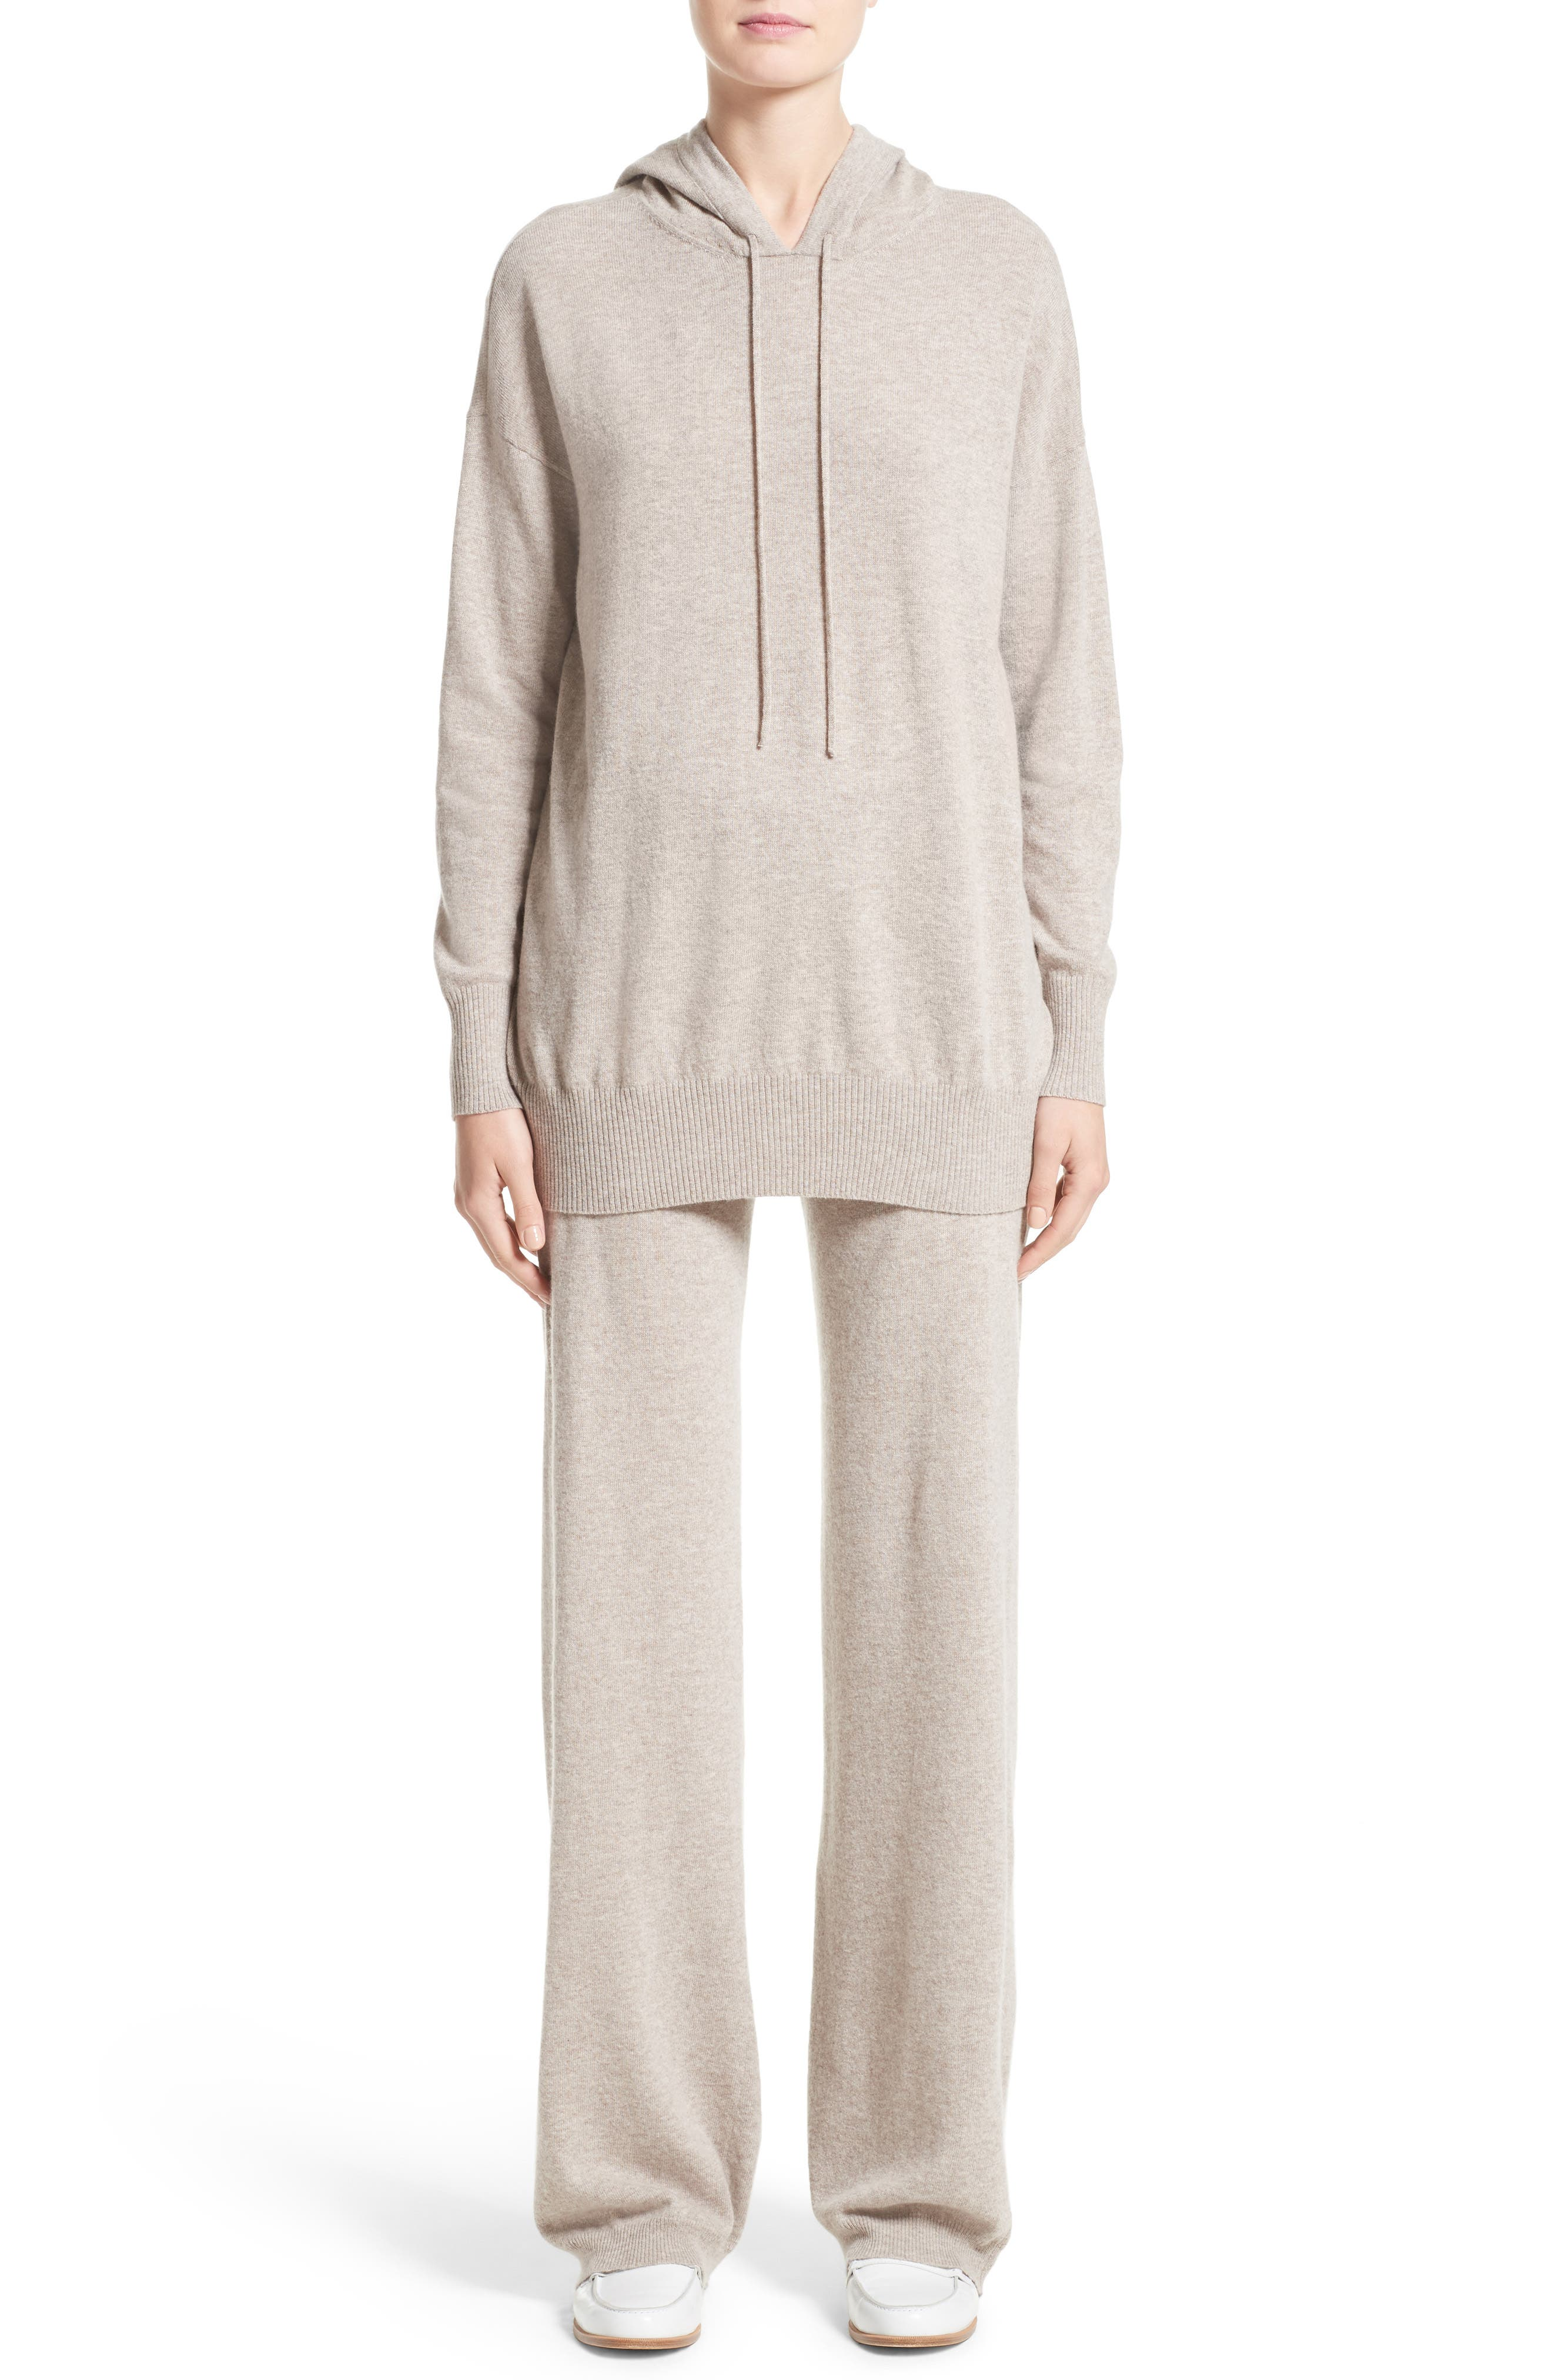 Nitra Wool & Cashmere Hooded Sweater,                             Alternate thumbnail 6, color,                             236